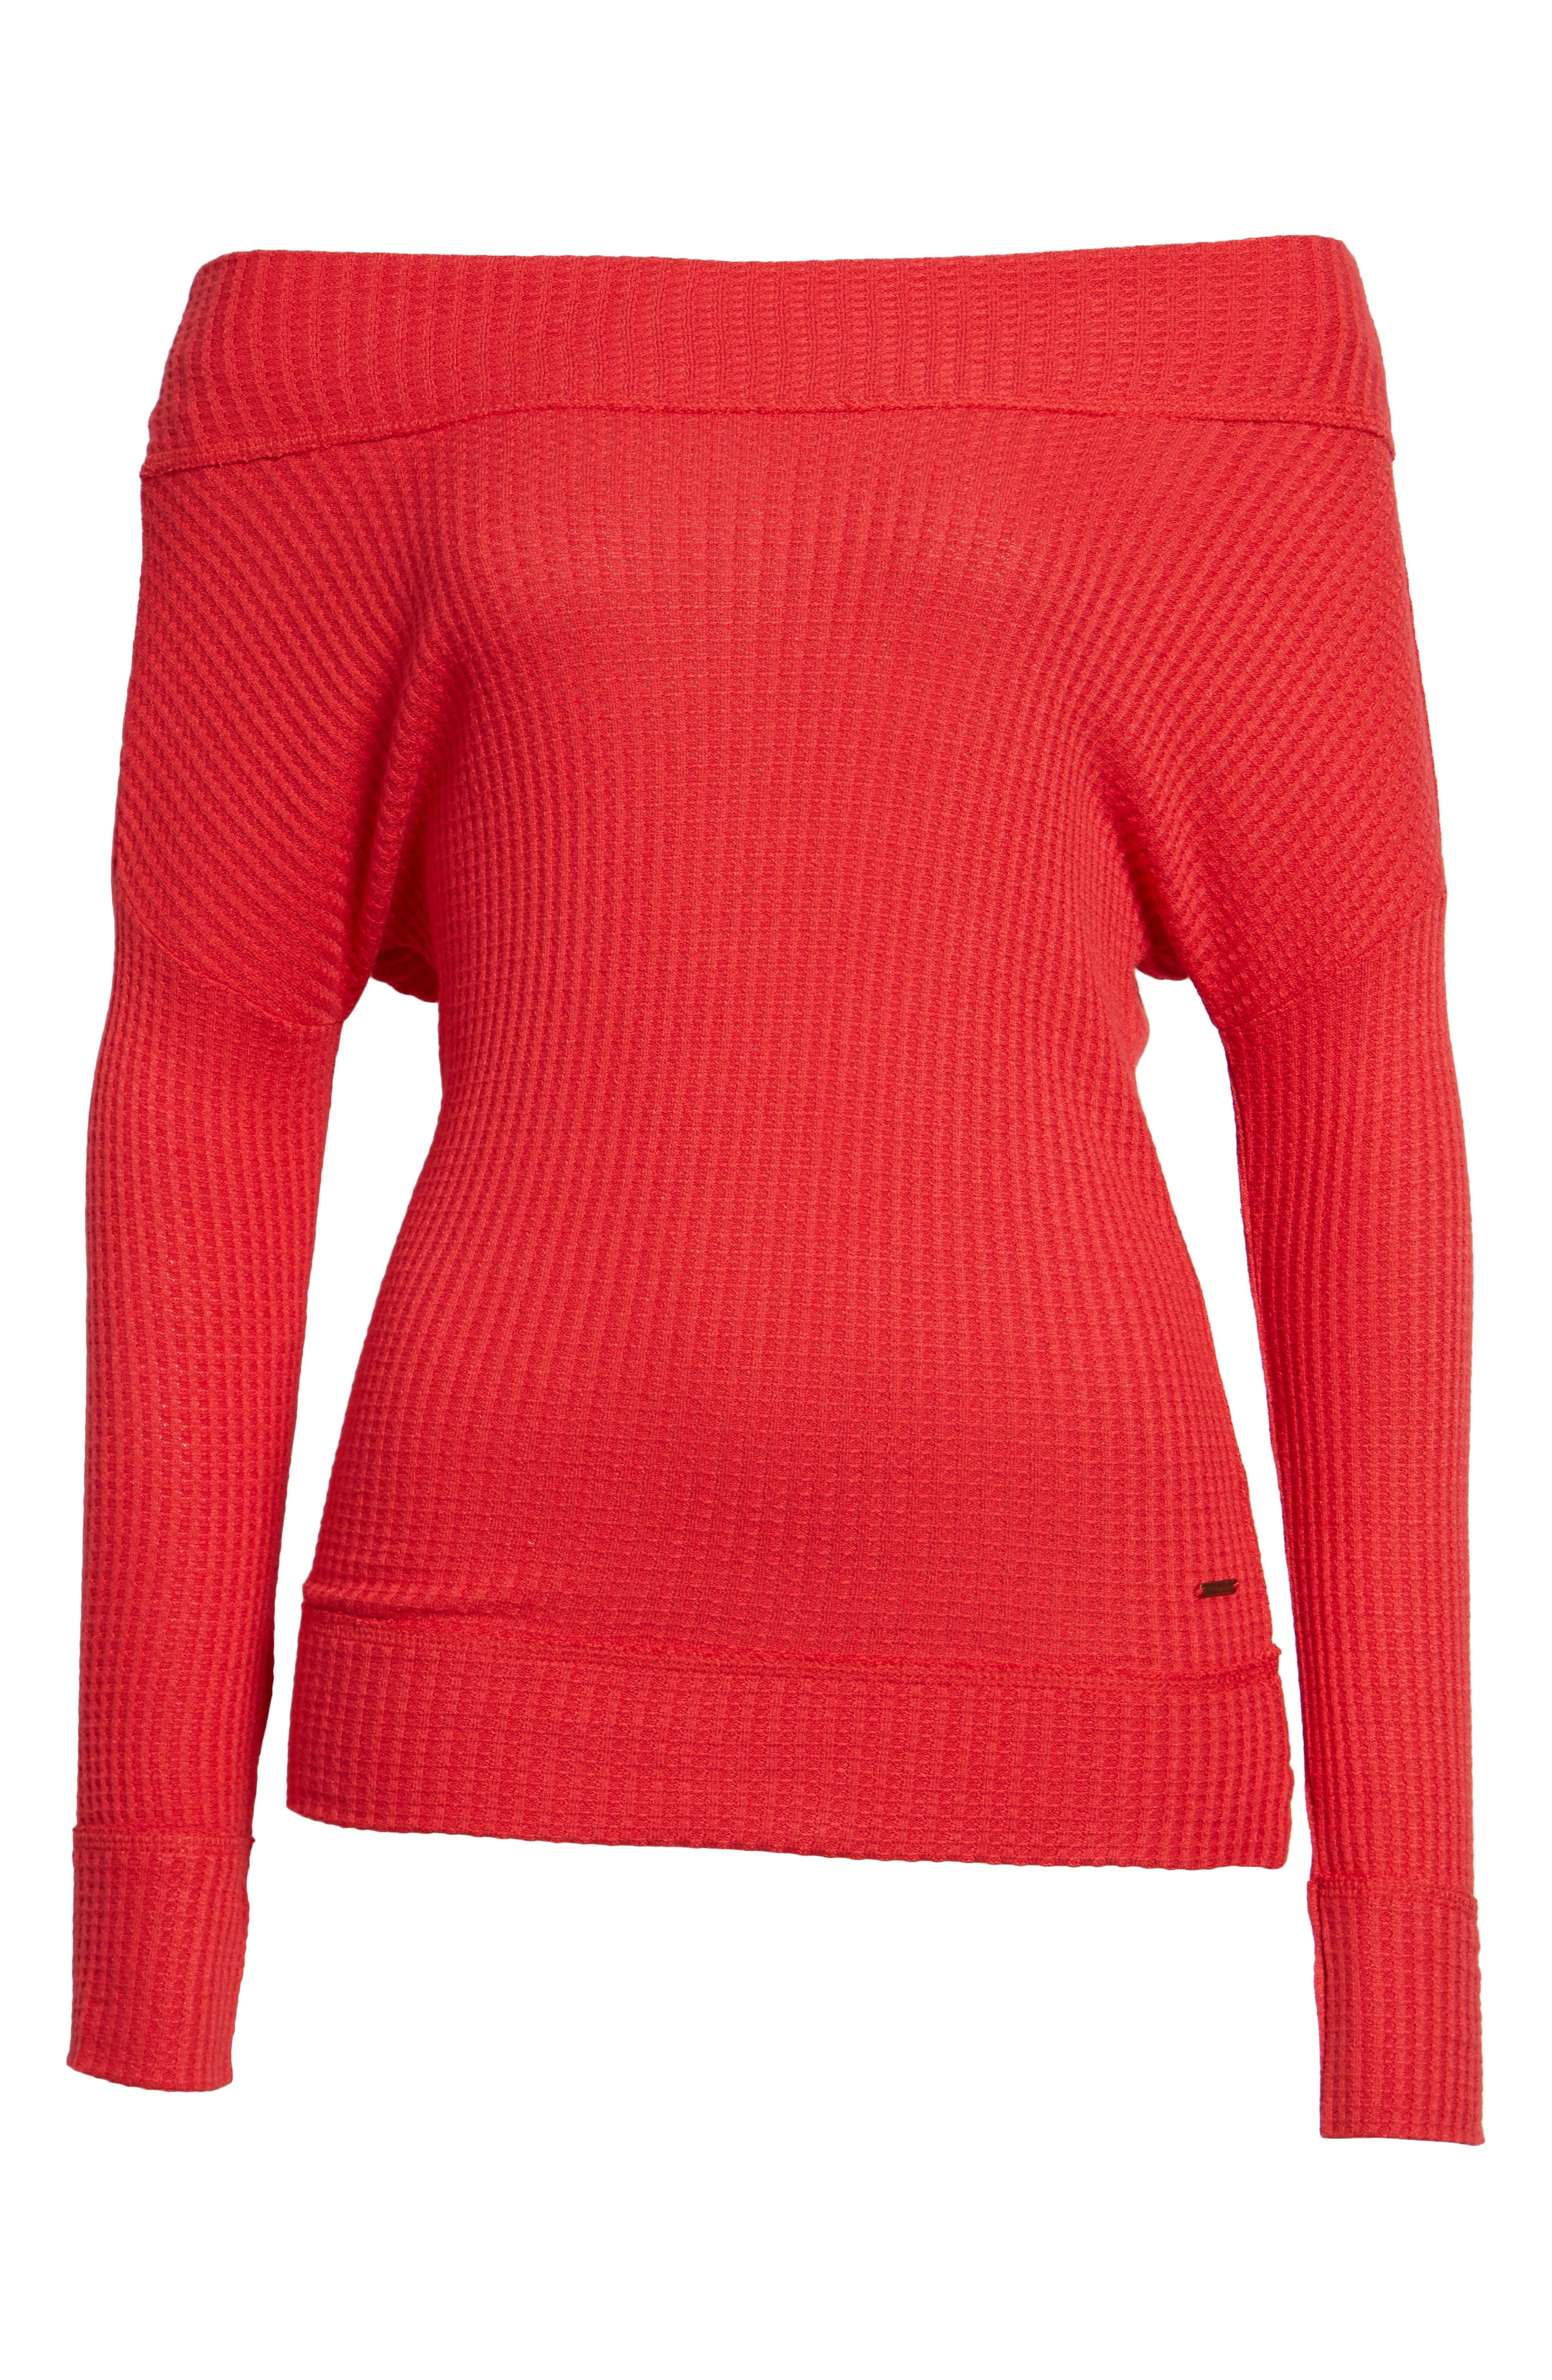 Off the Shoulder Thermal Knit Top,                             Main thumbnail 1, color,                             Red